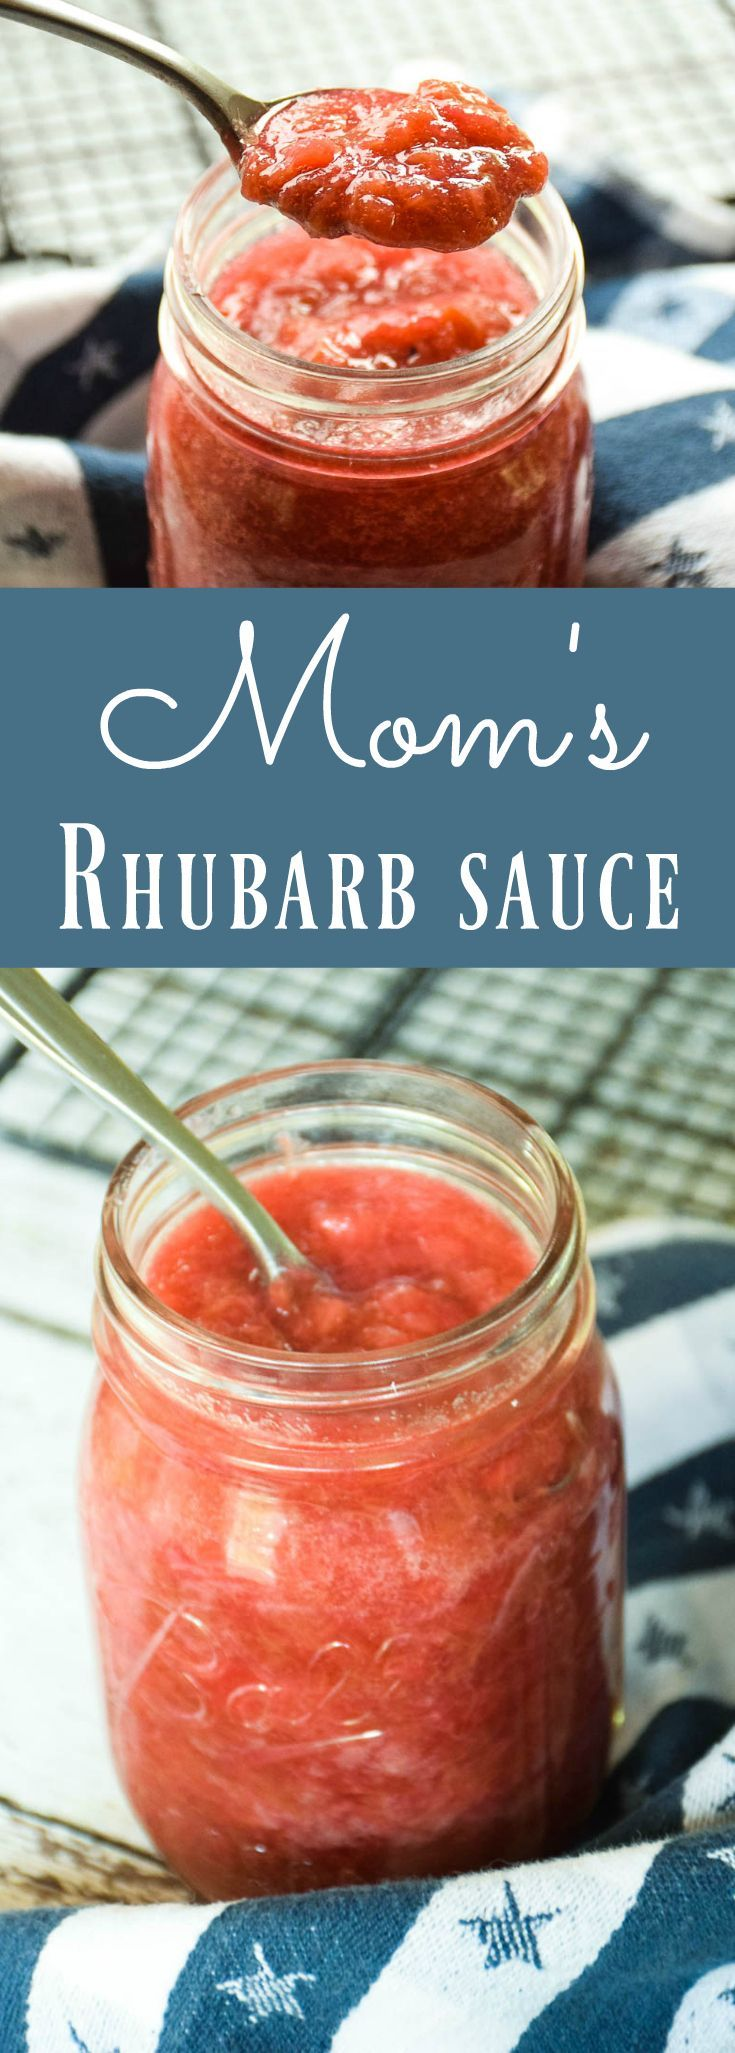 Sweet and tangy, Mom's Rhubarb Sauce Recipe is perfect for topping buttered toast or served over top of ice cream. It is also great in pastries and muffins (or on a muffin!). Mom used to make Rhubarb Sauce often when I was growing up. Rhubarb was always plentiful back those days. More so than it...Read More »